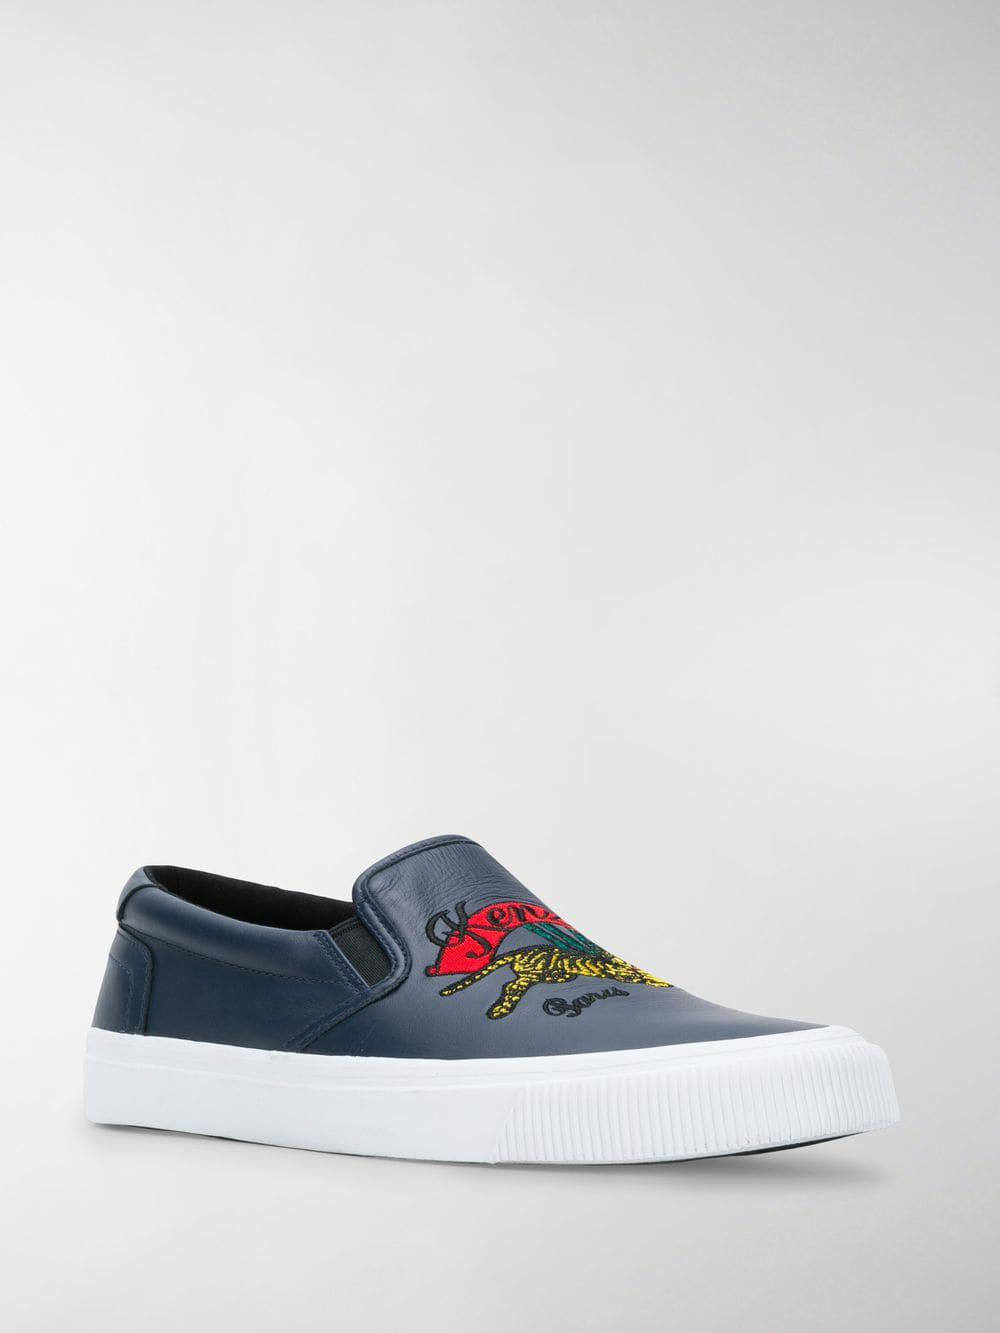 cff6348d53a Lyst - KENZO K-skate Jumping Tiger Sneakers in Blue for Men